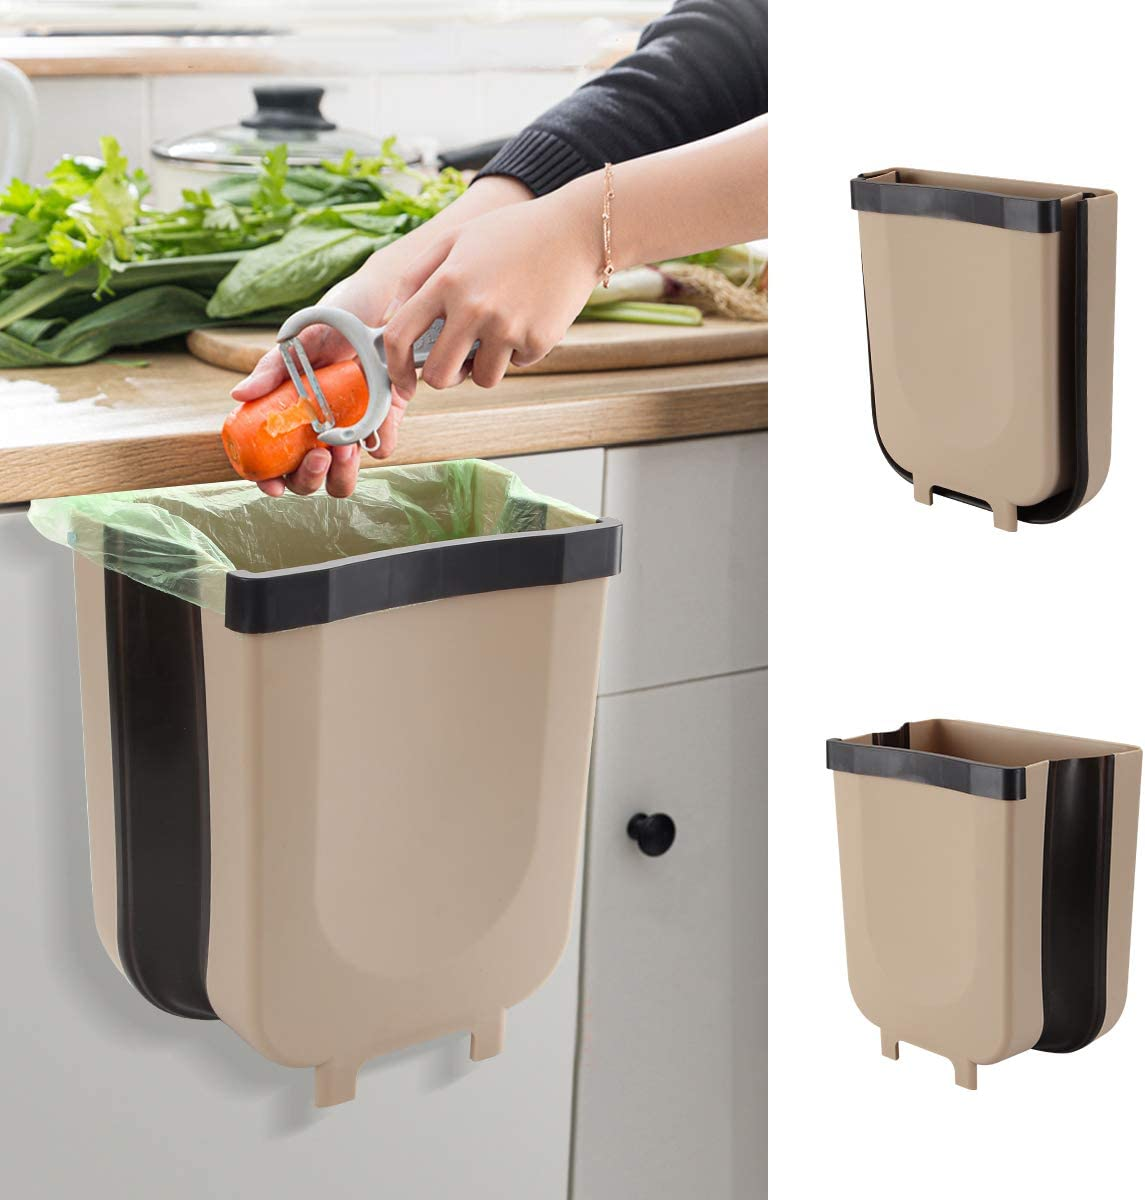 NULIPAM Hanging Kitchen Waste Bin Cabinet Trash Can Collapsible Mini Garbage Cans for Car/Bathroom/Office/Bedroom/Camping -2.4 Gallon